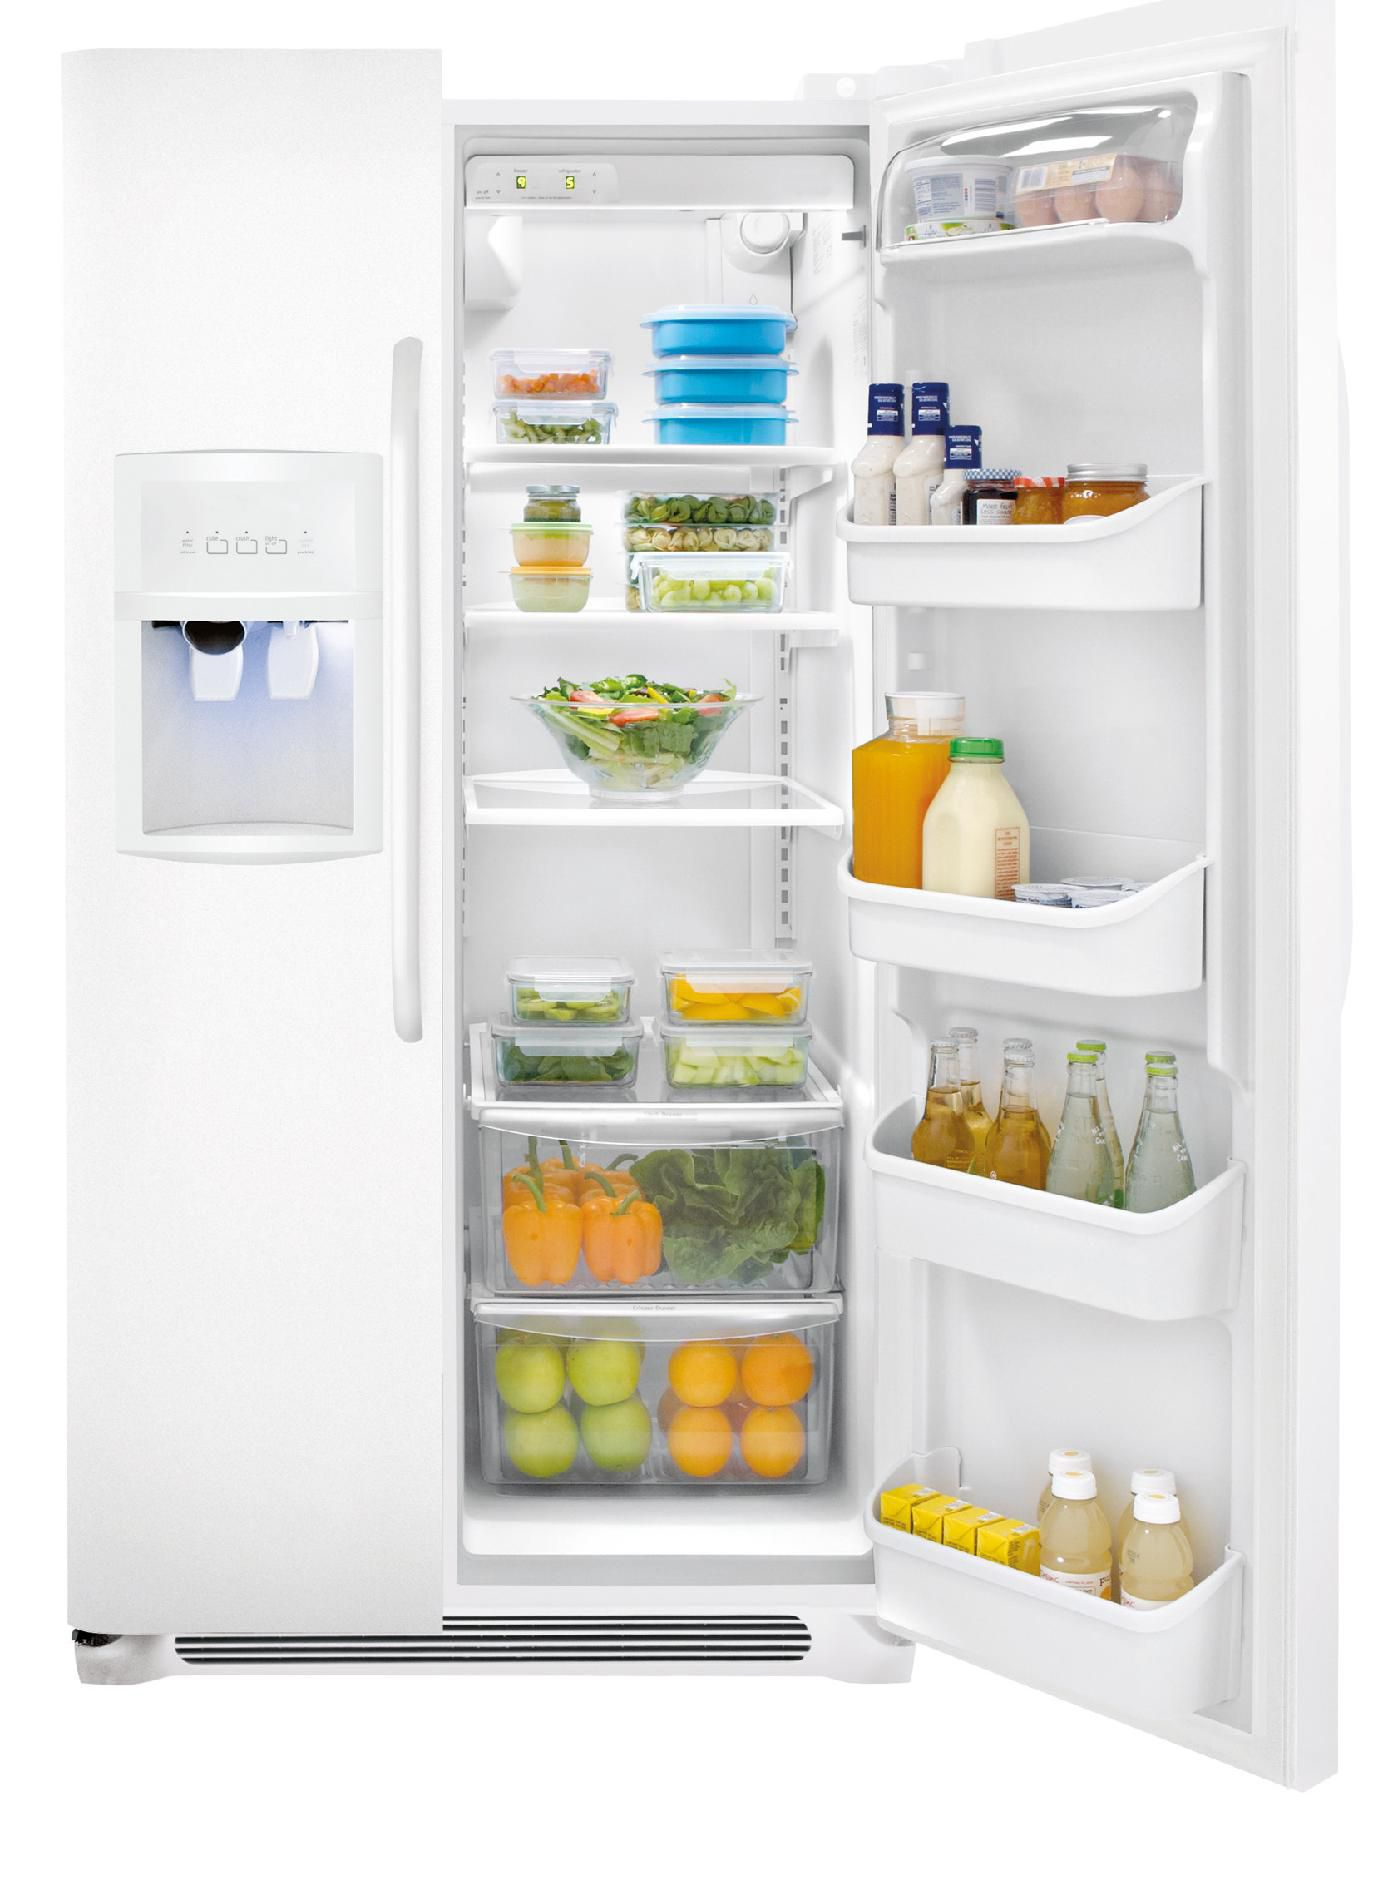 FRIGIDAIRE  26 cu. ft. Side-by-Side Refrigerator - White